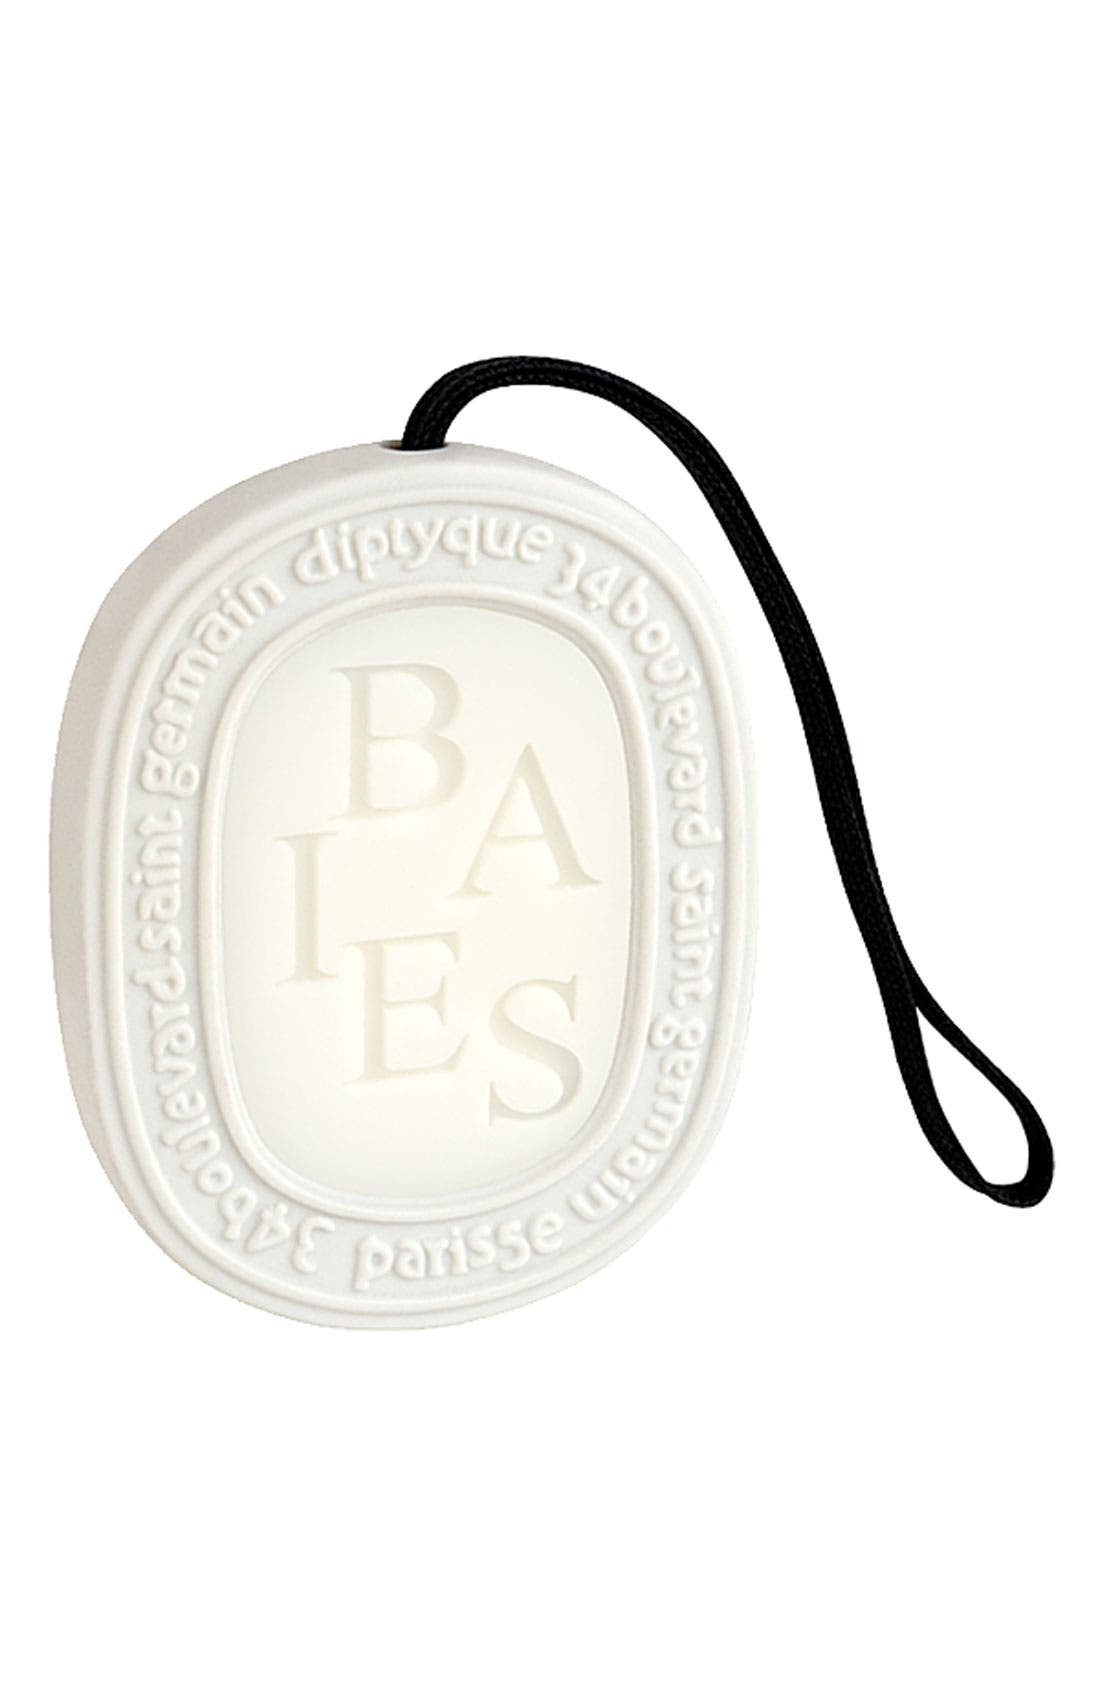 DIPTYQUE 'Baies/Berries' Scented Oval